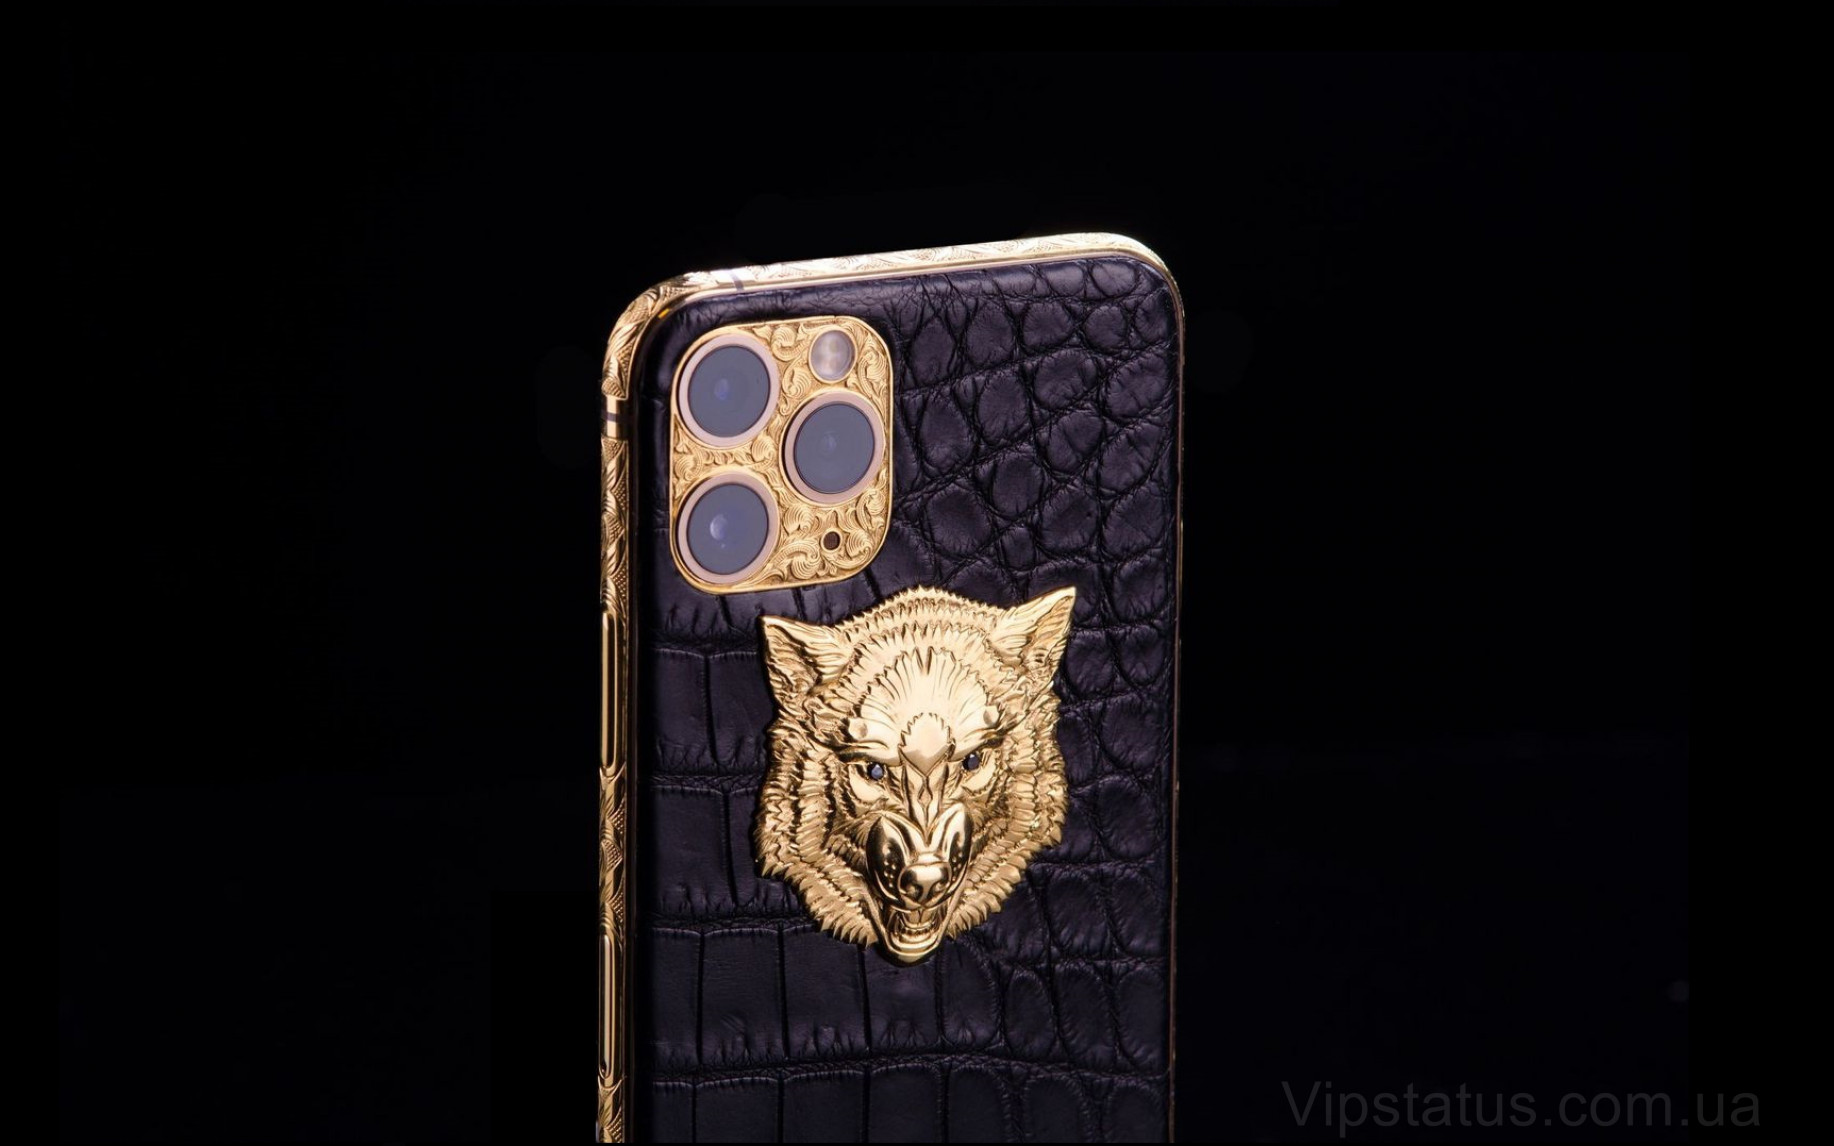 Elite Young Wolf IPHONE 12 PRO MAX 512 GB Young Wolf IPHONE 12 PRO MAX 512 GB image 4